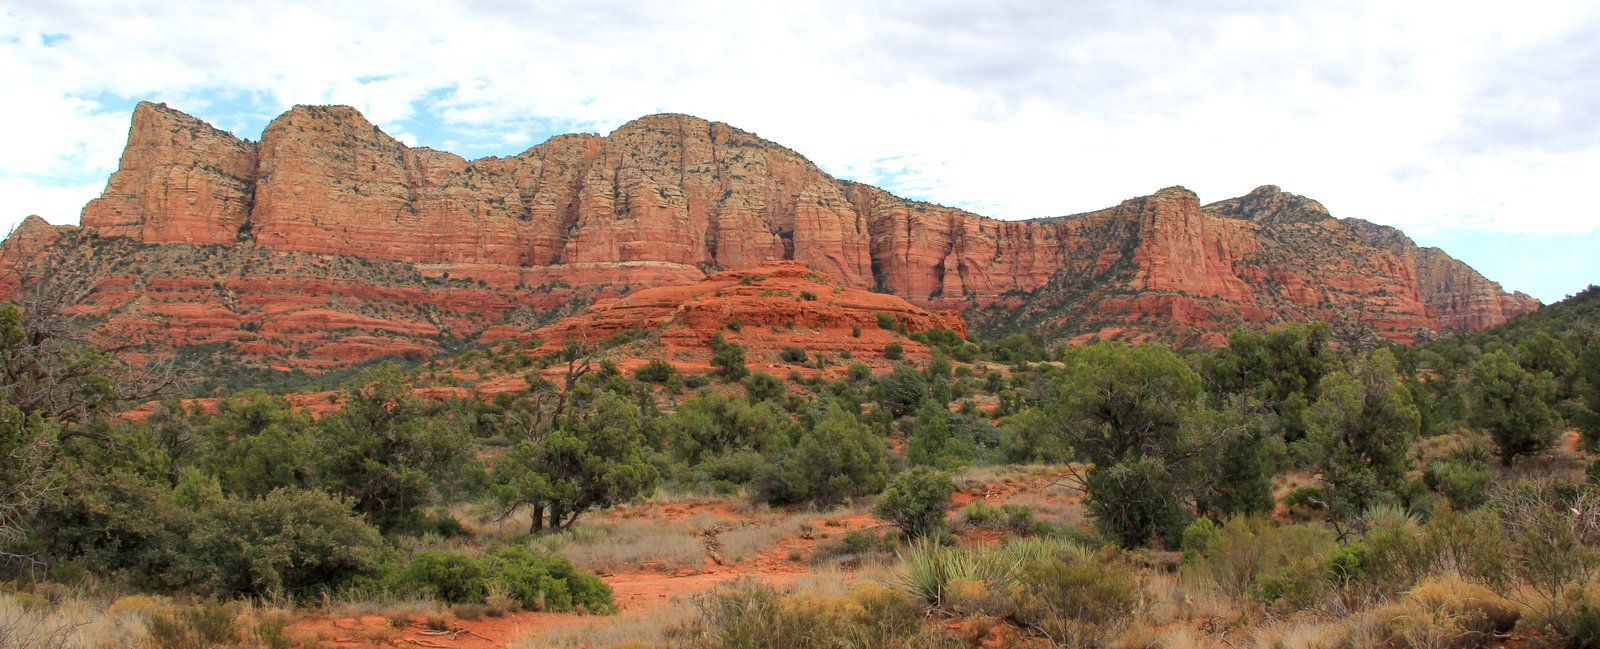 Sedona_Arizona_photo_2888